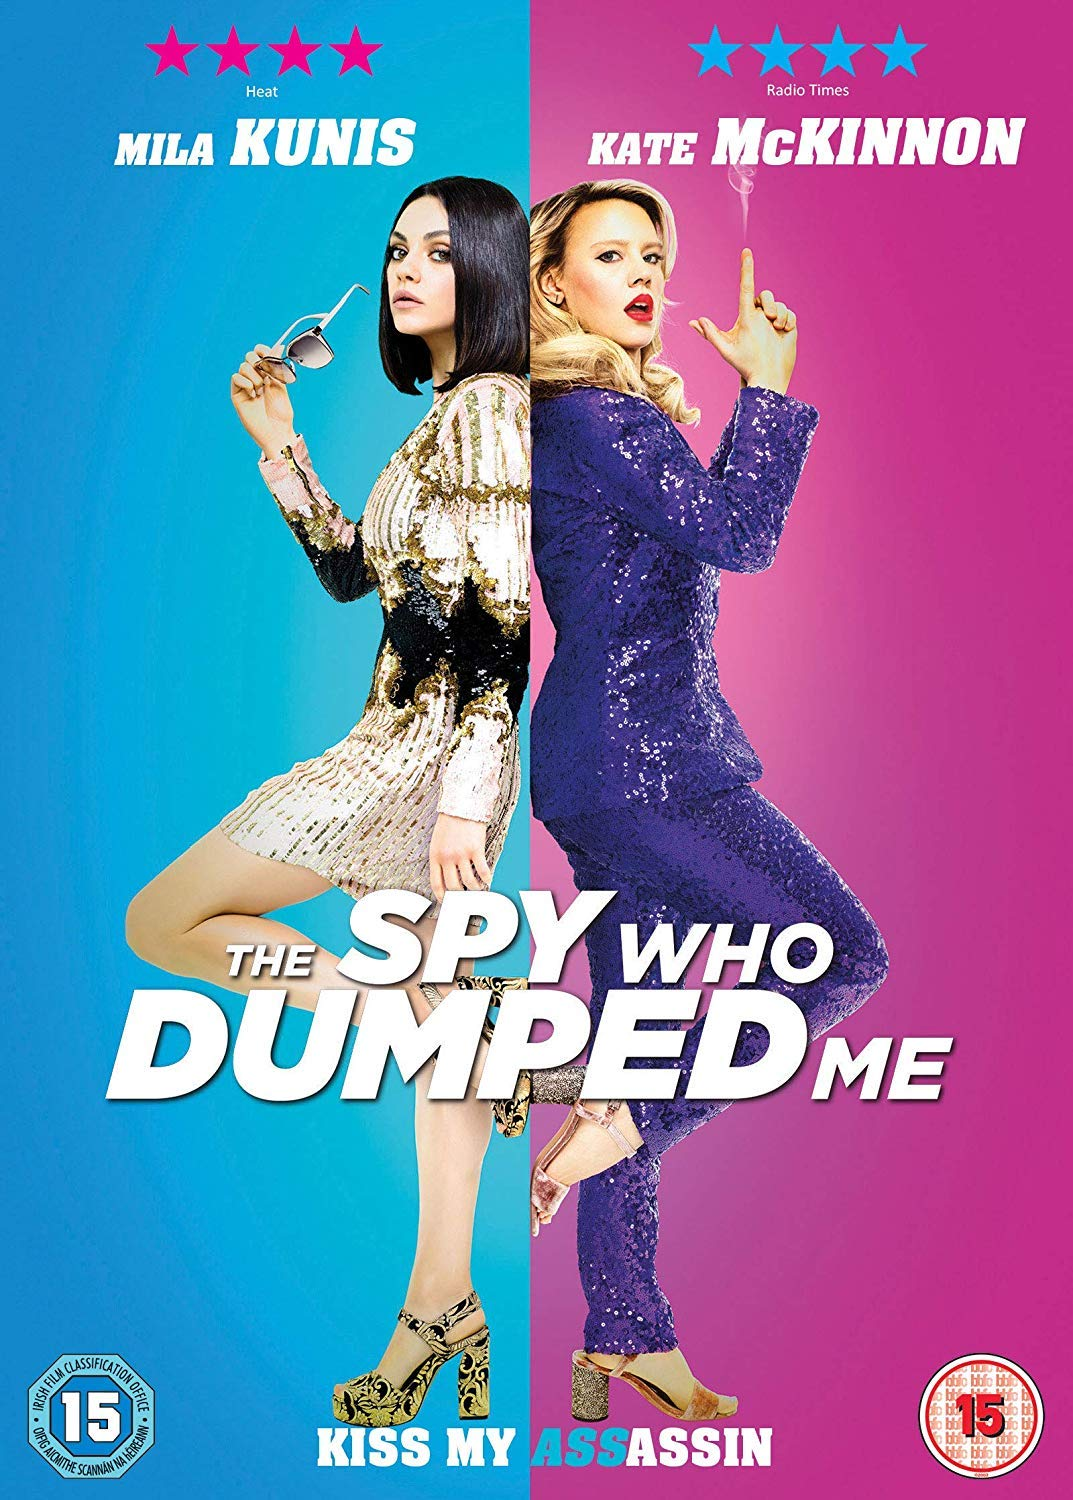 FOX ACTION MOVIES, THE SPY WHO DUMPED ME